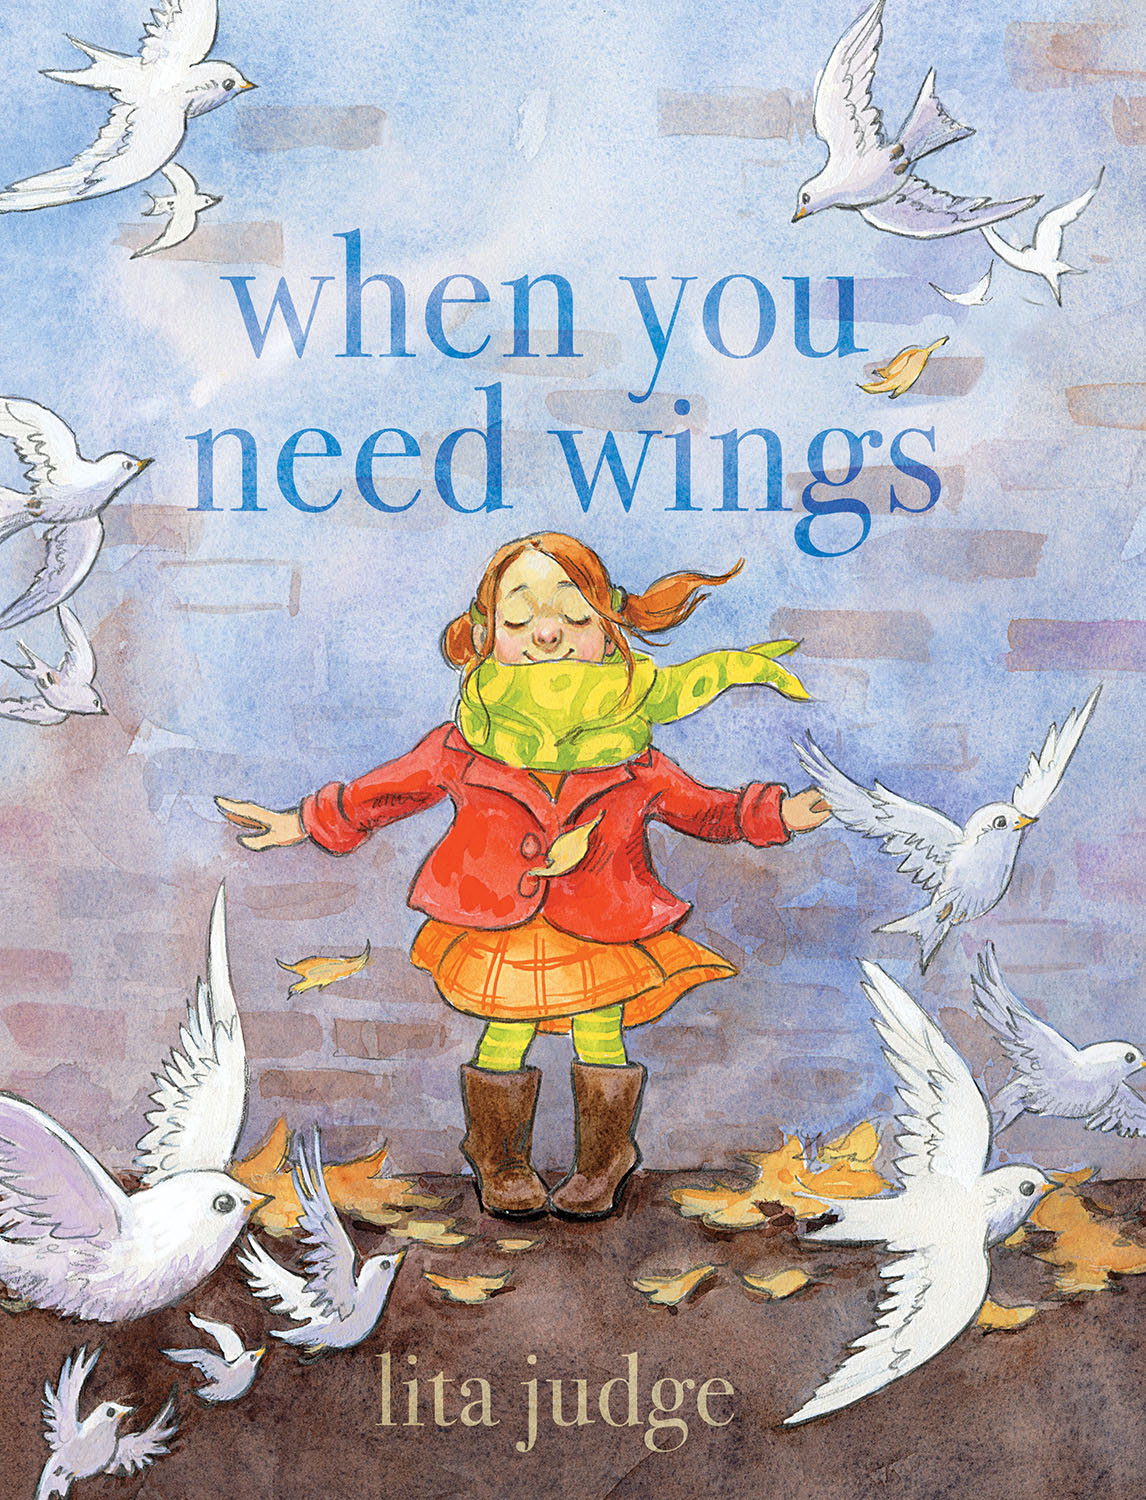 When You Need Wings by Lita Judge